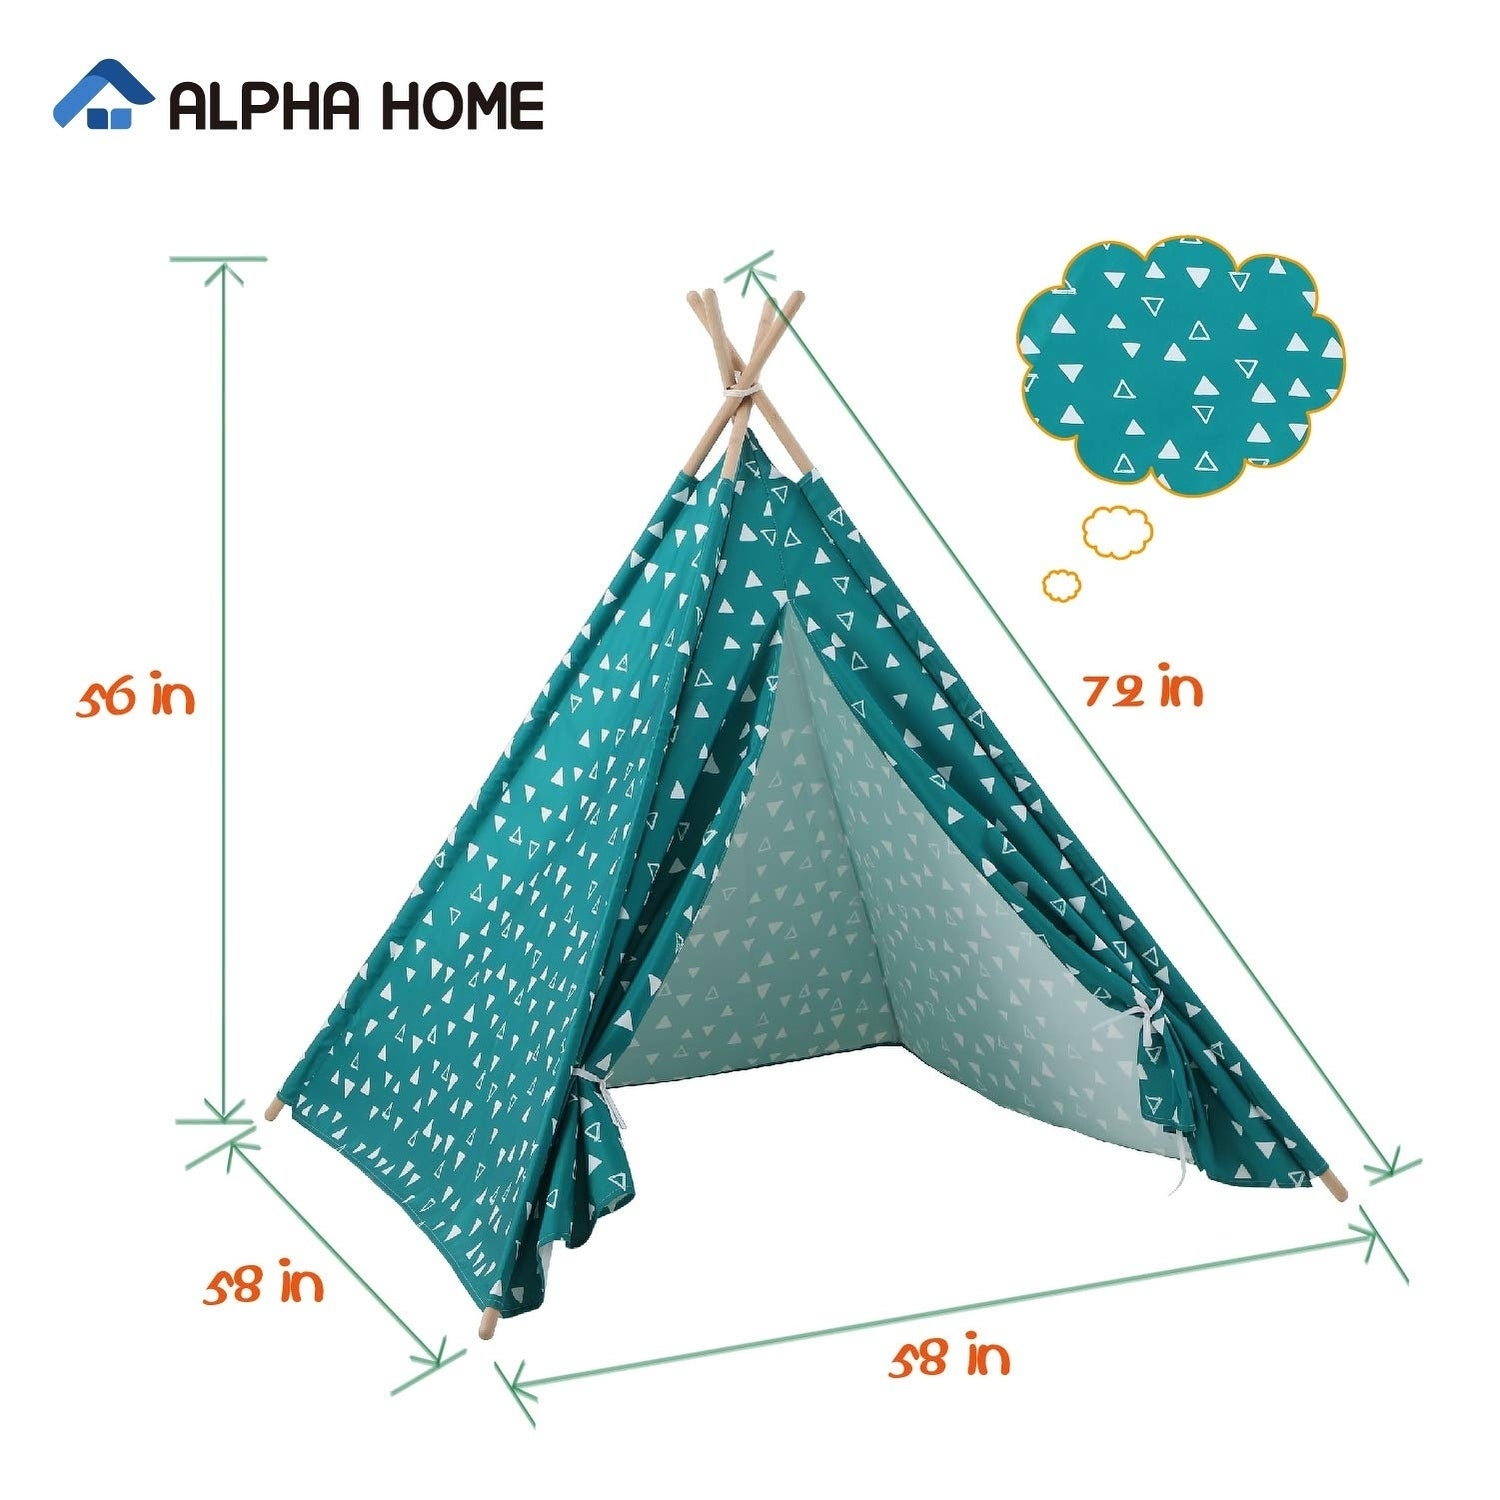 Tents Tunnels Kids Furniture Room Decor Alpha Home Teepee Tent For Kids Canvas Childs Play Teepee Tent Indoor Outdoor With Carry Bag 58 X 58 X 56 Kids Furniture